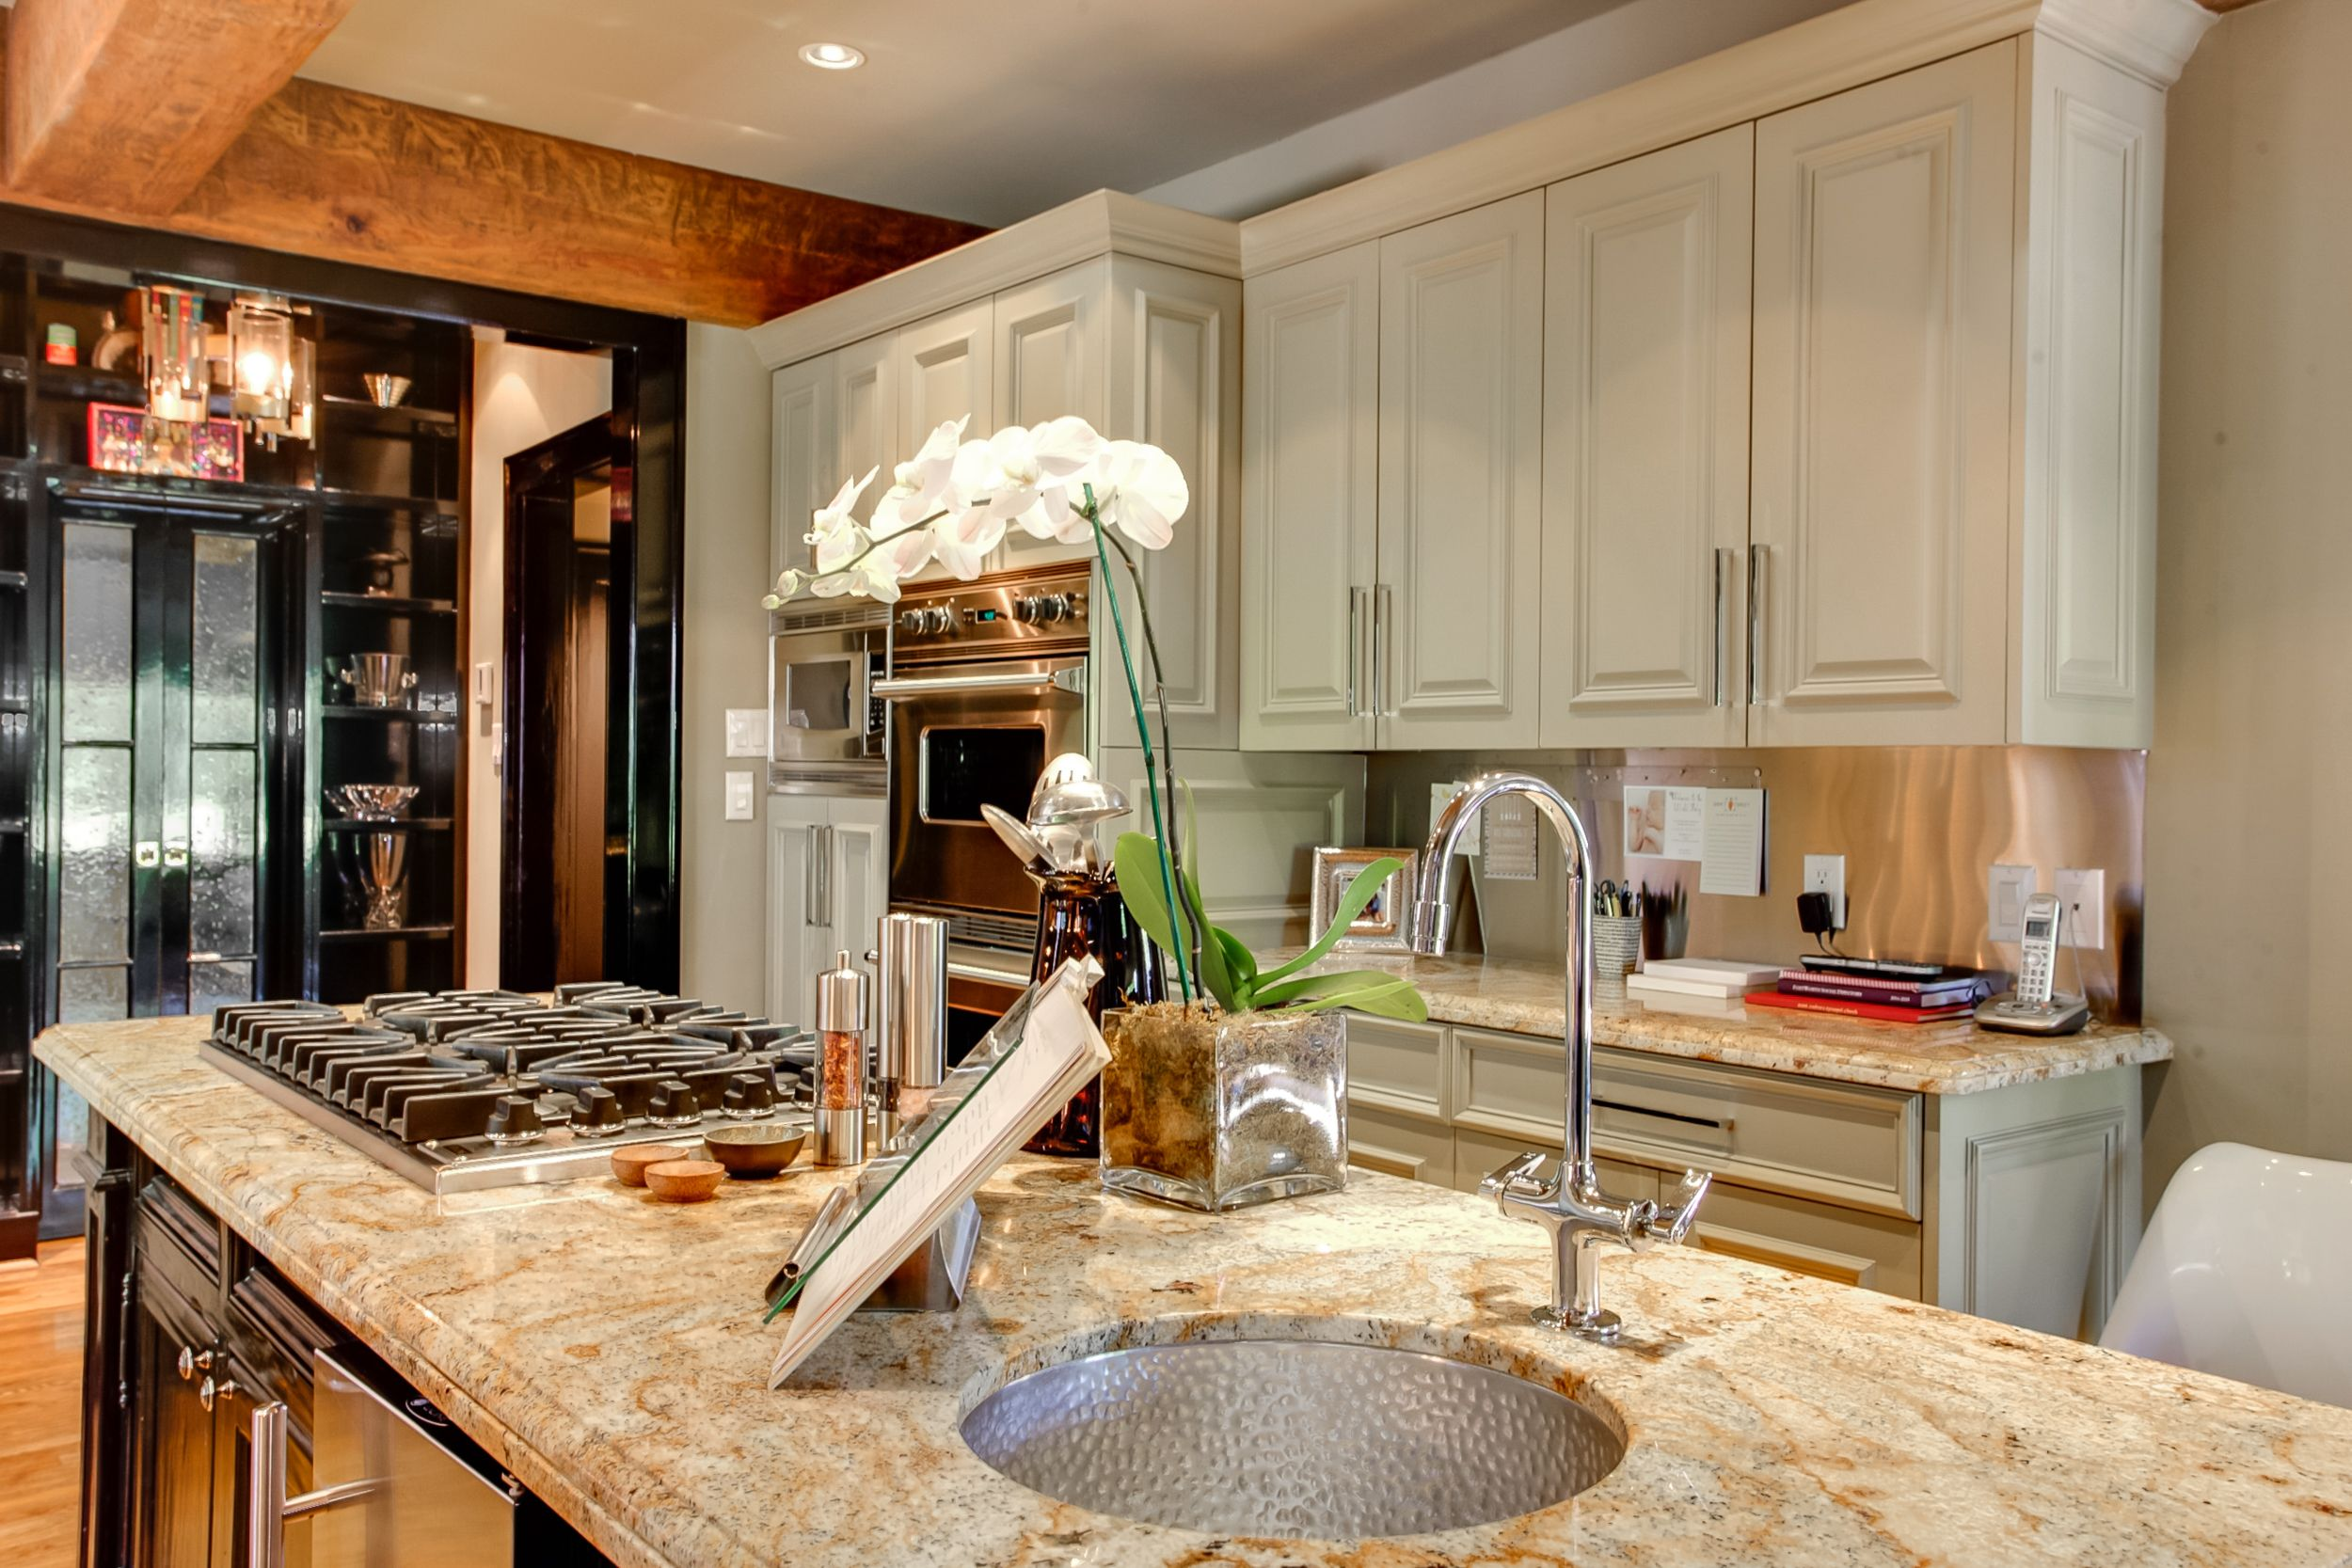 Gourmet Kitchen With Granite Counter Tops 2117 Spanish Trail